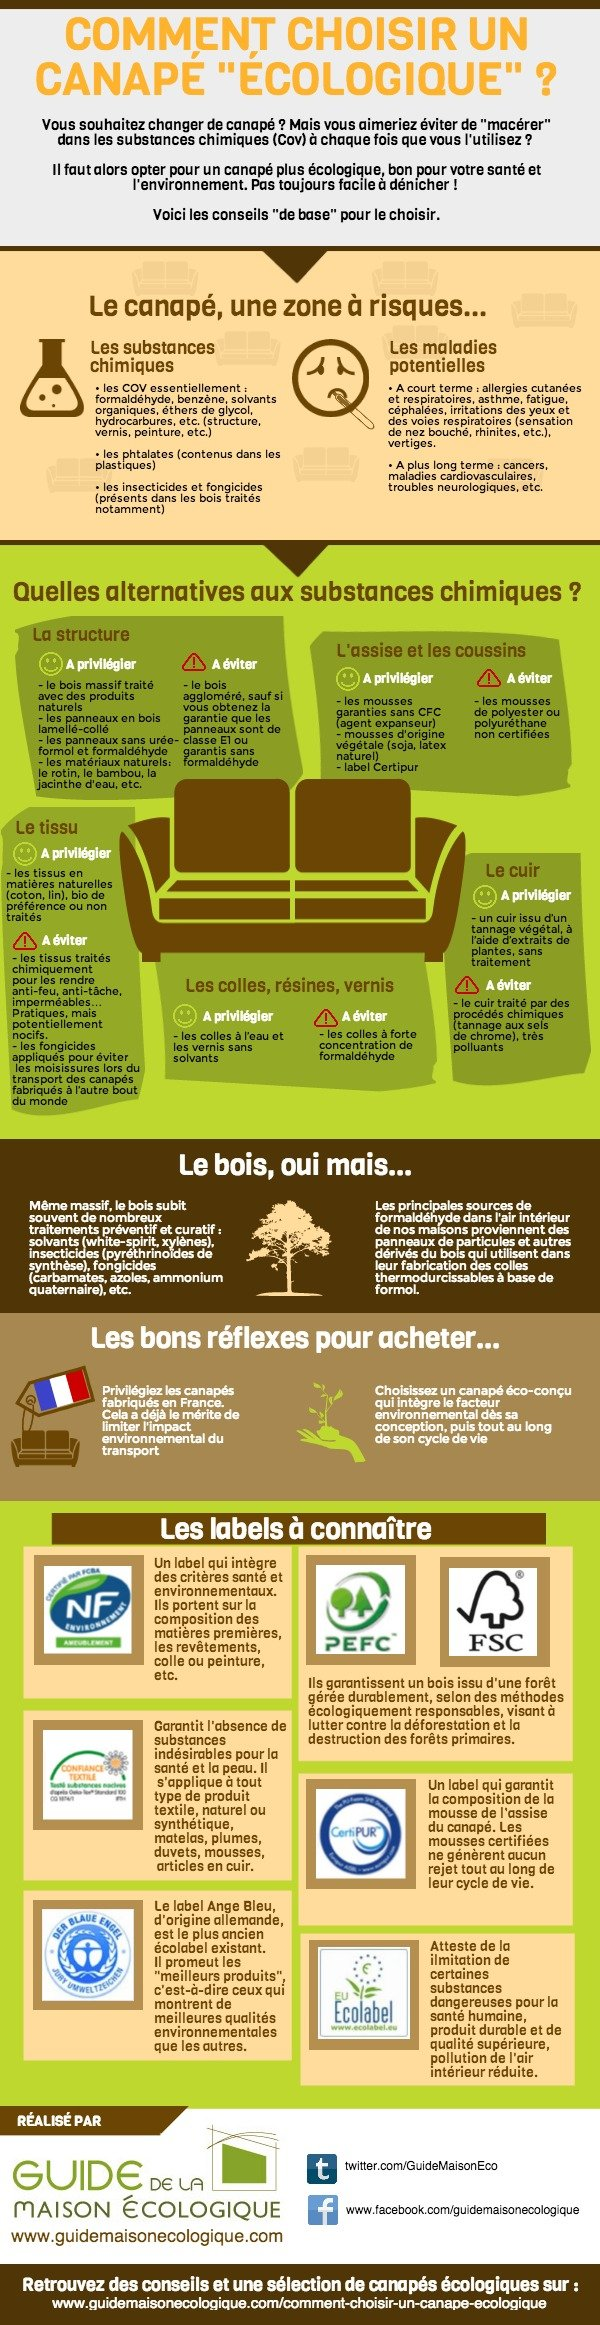 infographie comment choisir un canap cologique guide de la maison cologique. Black Bedroom Furniture Sets. Home Design Ideas